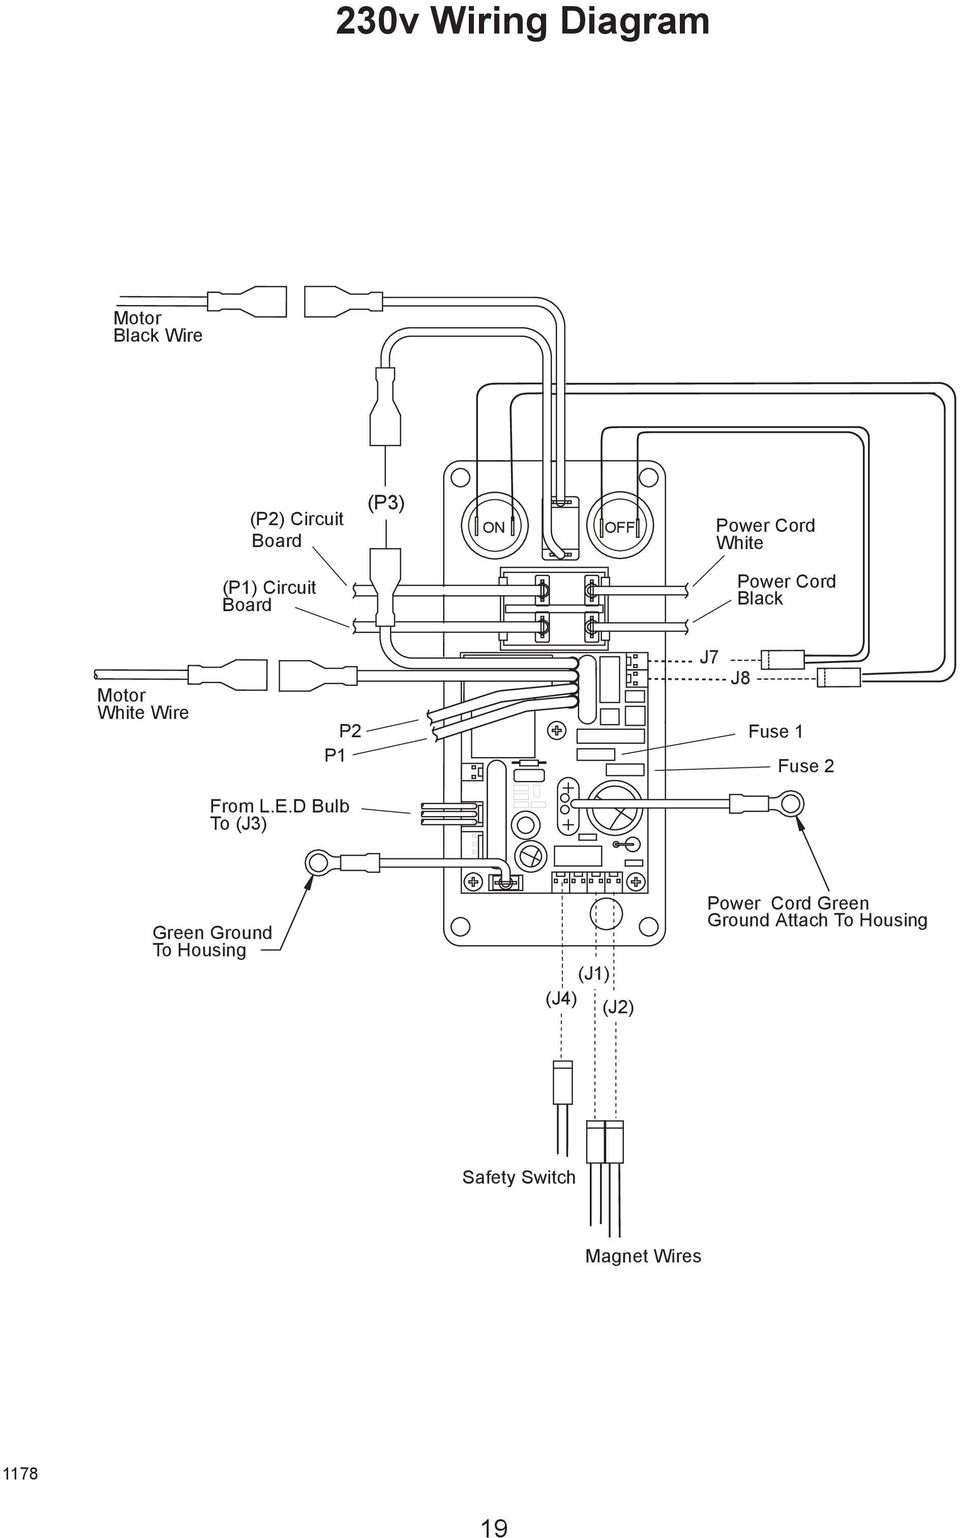 hight resolution of  hmd904 series portable magnetic drill pdf on hydraulic press wiring diagram cold saw wiring